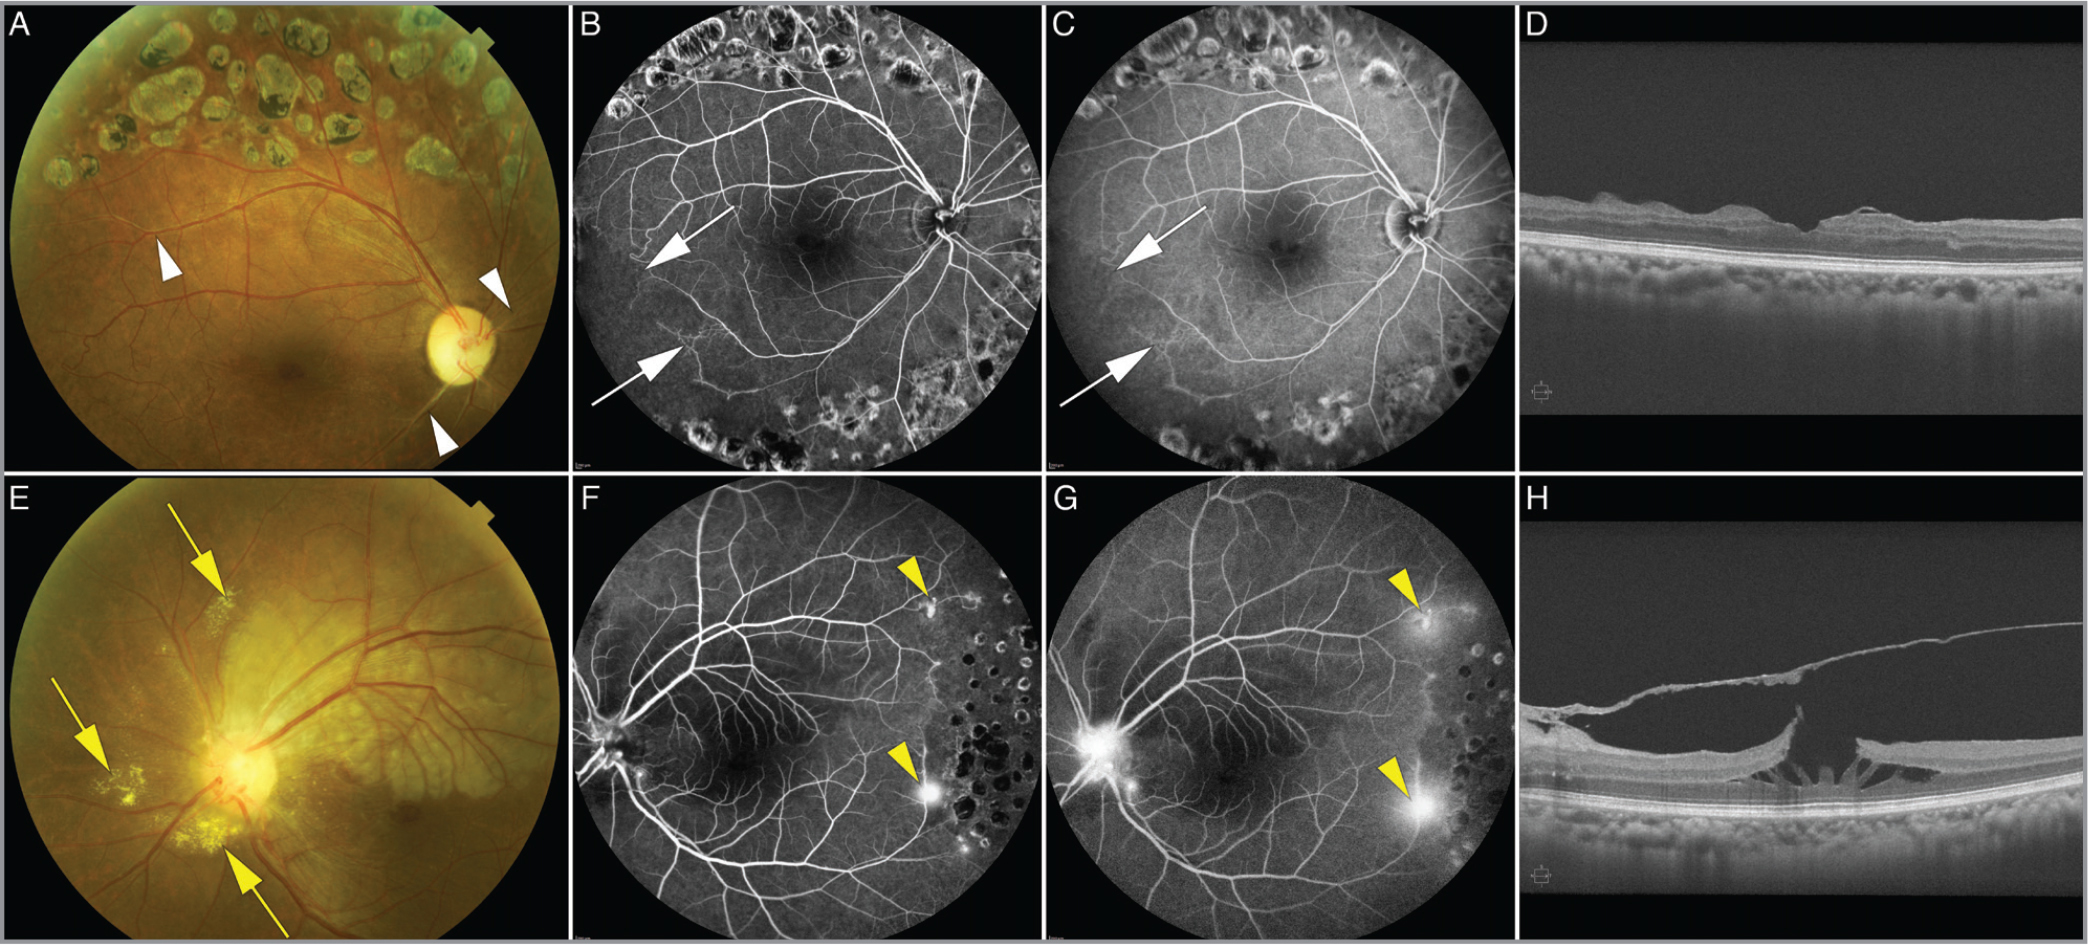 Multimodal retinal imaging from June 2015 when the patient presented with an acute branch retinal artery occlusion (BRAO) in the left eye. (A) Color fundus photograph of the right eye showing retinal striae, inferior altitudinal disc pallor, gliosis of aneurysms proximal to the optic disc, stenosis in a superonasal and inferotemporal vessel, retinal vein sheathing (white arrowheads), and previous panretinal photocoagulation (PRP). (B,C) Intermediate-phase and late-phase fluorescein angiography (FA) of the right eye showing retinal ischemia with capillary nonperfusion, pruning, and tortuosity of vessels in the inferotemporal quadrant (white arrows) and shunt vessels and anastomotic vessels between superotemporal and inferotemporal circulations consistent with an old BRAO. Signs of previous PRP are visible. (D) Spectral-domain optical coherence tomography (SD-OCT) B-scan of the right eye centered on the fovea demonstrating epiretinal membrane (ERM) and thinning of the inner retina. (E) Color fundus photograph of the left eye showing dilated vessels proximal to the optic nerve head, retinal whitening along the superotemporal arcade surrounding an acute BRAO in the superior macula, peripapillary hard exudates (yellow arrows), optic disc edema, and retinal vein sheathing. (F,G) Intermediate-phase and late-phase FA of the left eye showing dilated vessels proximal at the optic nerve head, superotemporal and inferotemporal aneurysms, peripheral capillary nonperfusion, two areas of neovascularization temporally (yellow arrowheads), and superotemporal blockage of dye secondary to the retinal thickening and swelling due to an acute BRAO. Signs of previous PRP are visible. (H) SD-OCT B-scan centered on the fovea of the left eye showing cystic retinal changes secondary to a lamellar hole and an ERM.